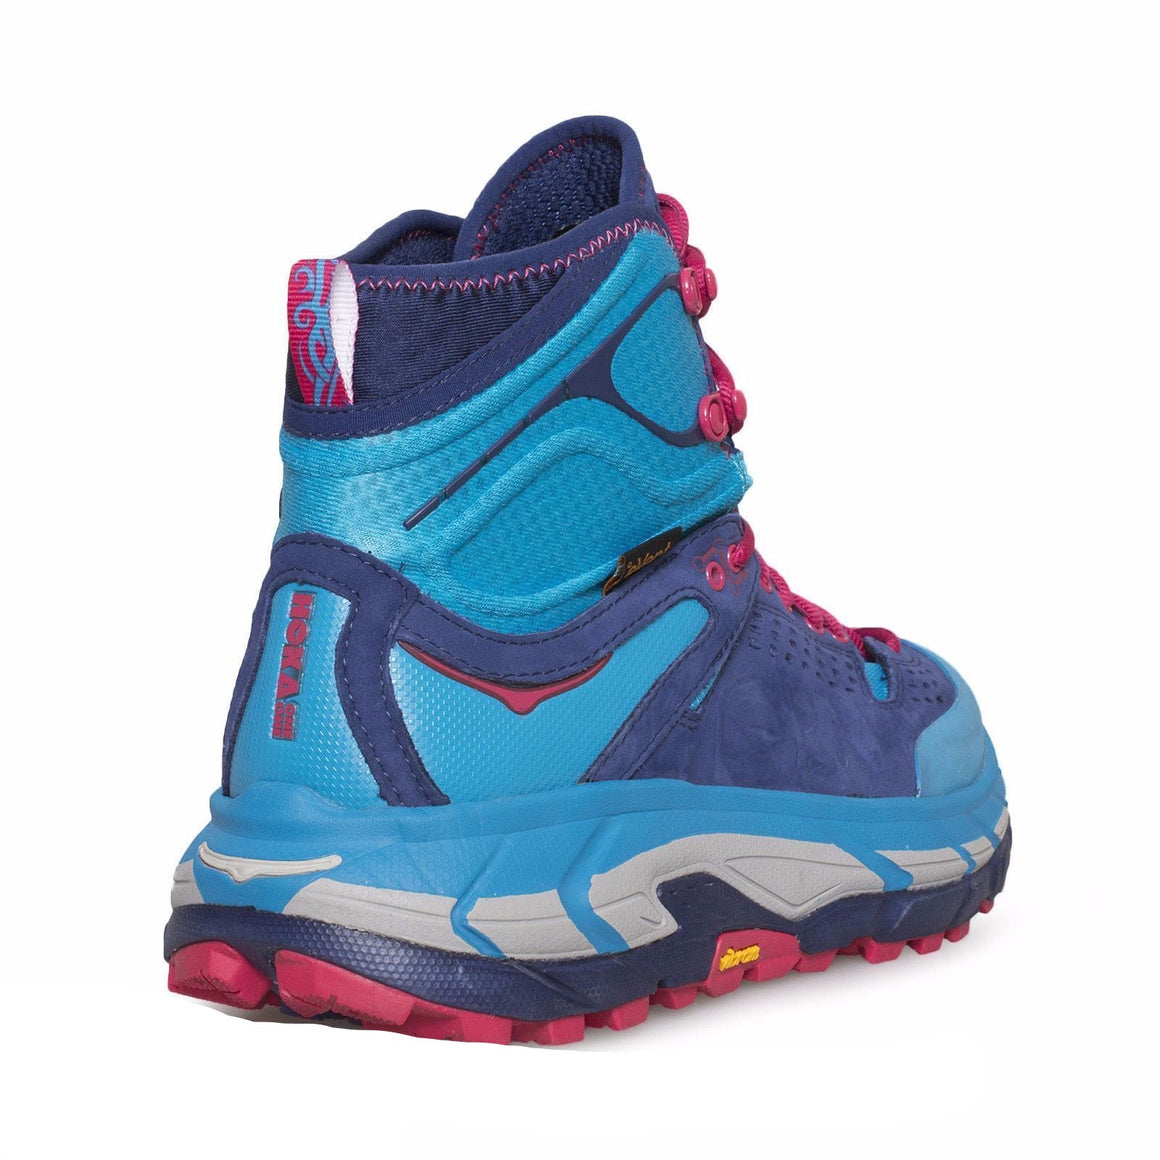 Hoka One One Tor Summit Ultra Hi Blue Jewel / Medieval Blue Boots